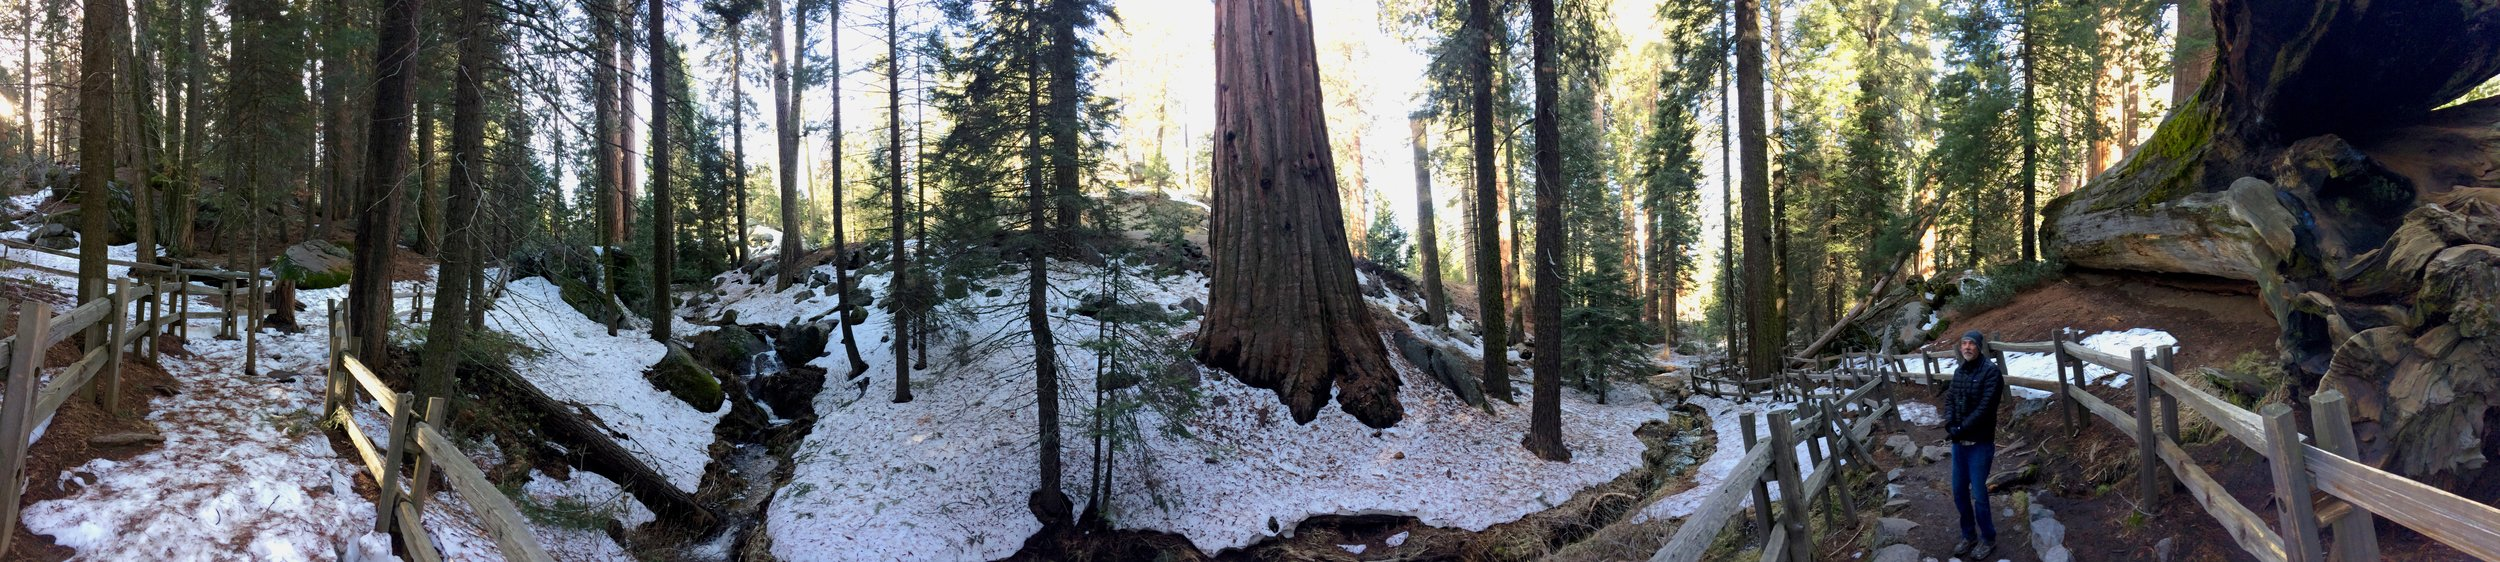 Giant sequoia trees (and my Park Passport Partner) in Grant Grove, Kings Canyon National Park. Passport stamp number 2.